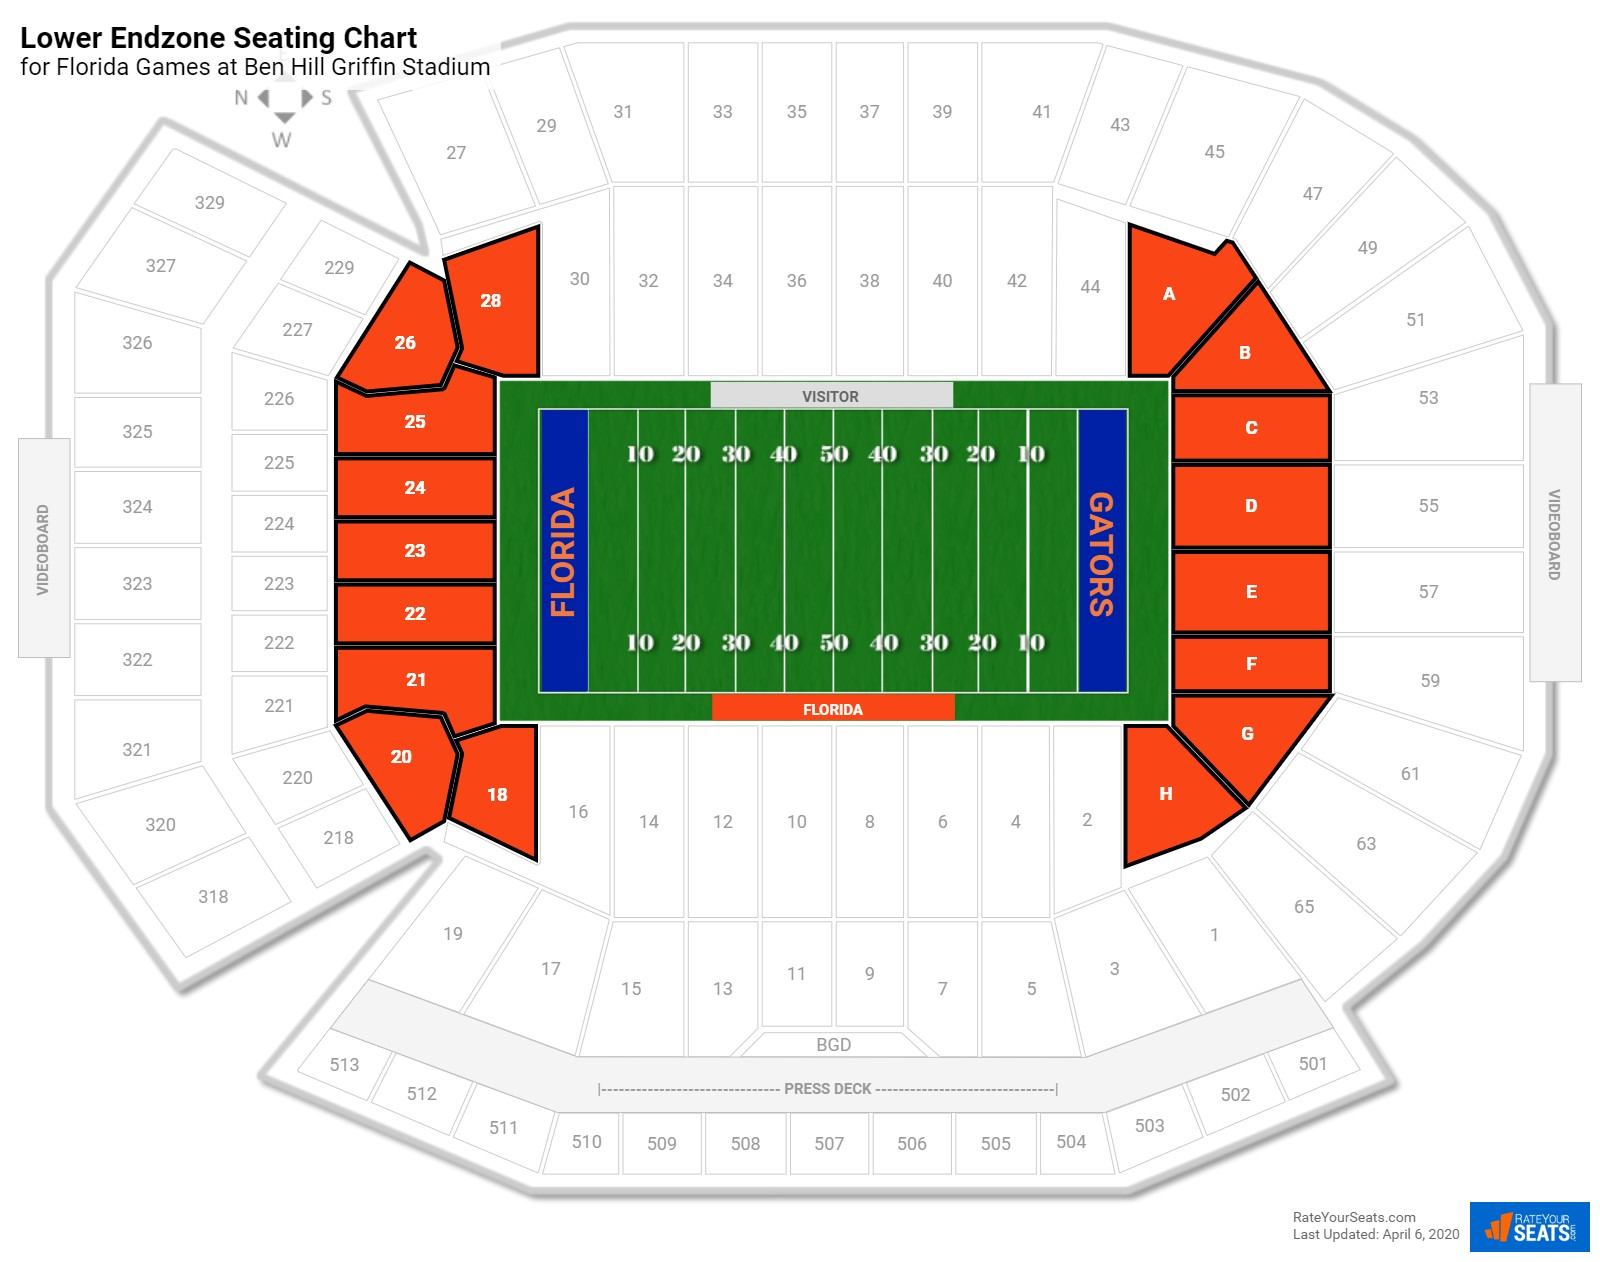 Ben Hill Griffin Stadium Lower Endzone seating chart